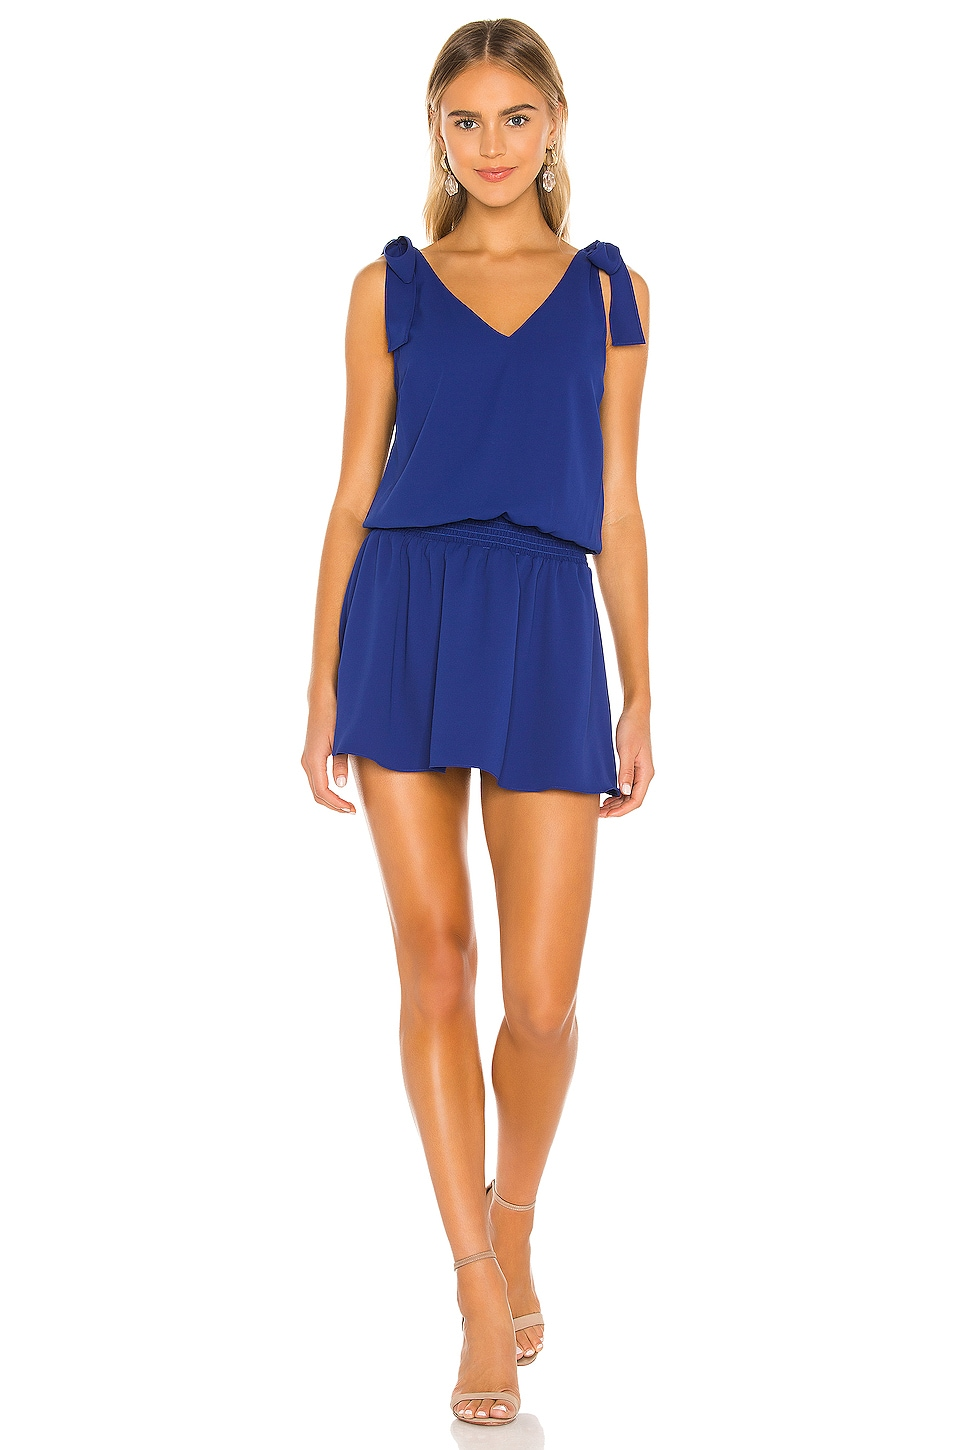 Josephina Dress             Amanda Uprichard                                                                                                       CA$ 272.92 4